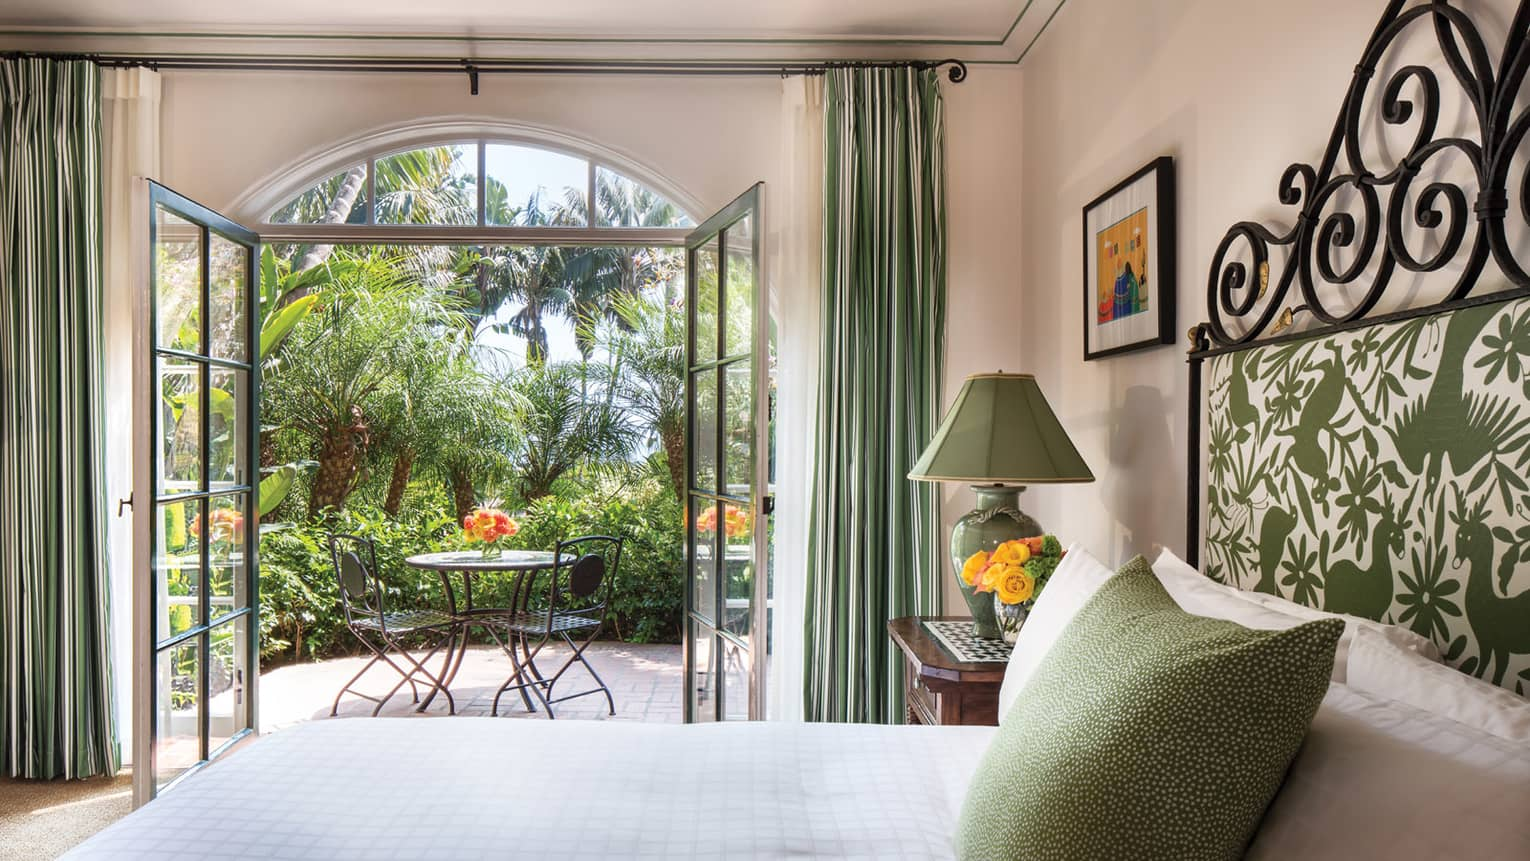 Garden Room open glass doors to sunny balcony, green lamp, pillow, headboard over bed